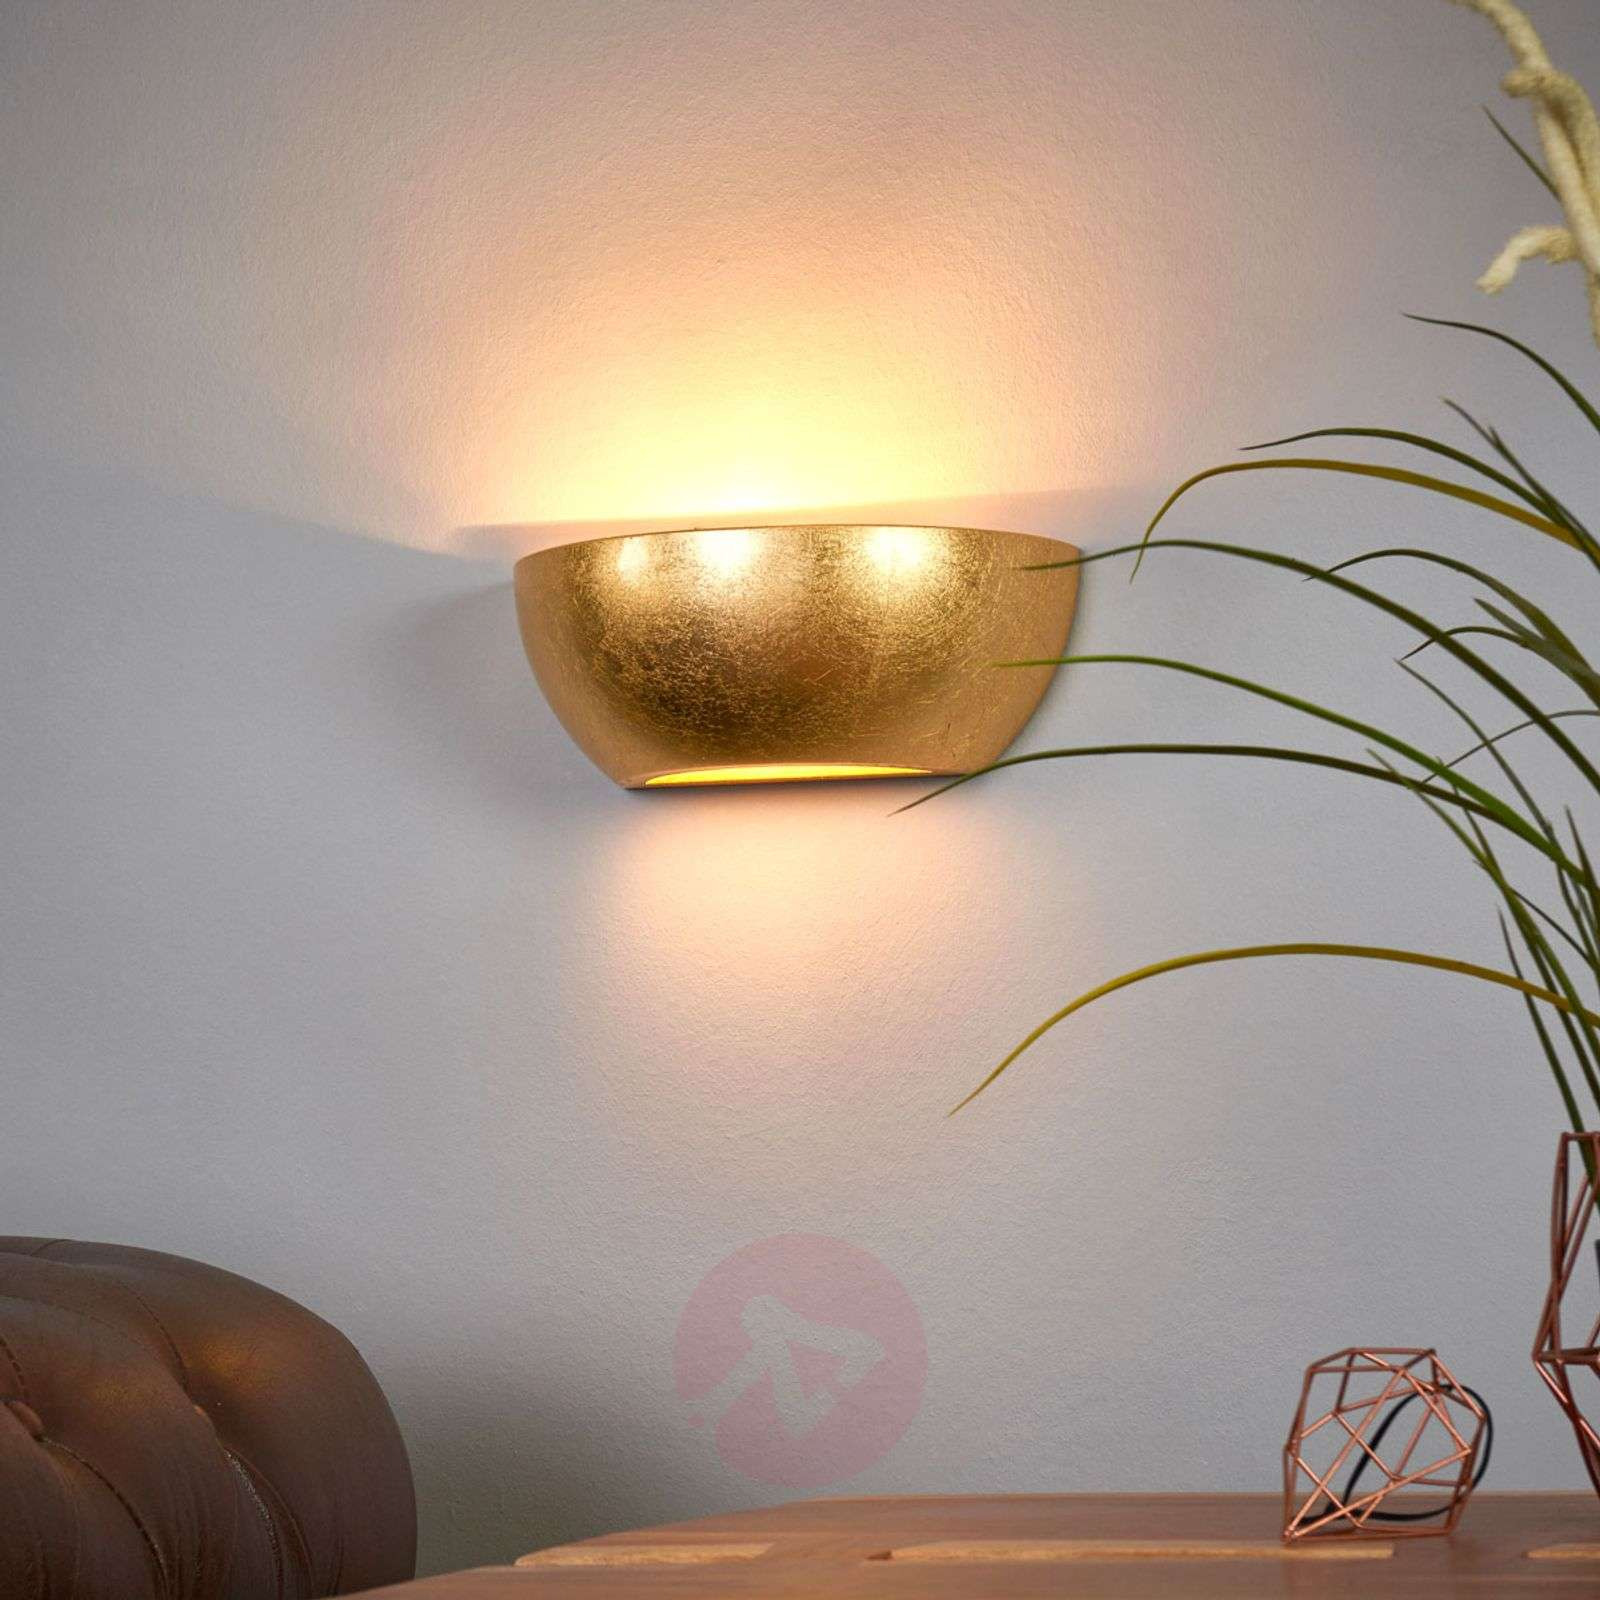 Wall light Kolja with a golden foil finish-9613061-02